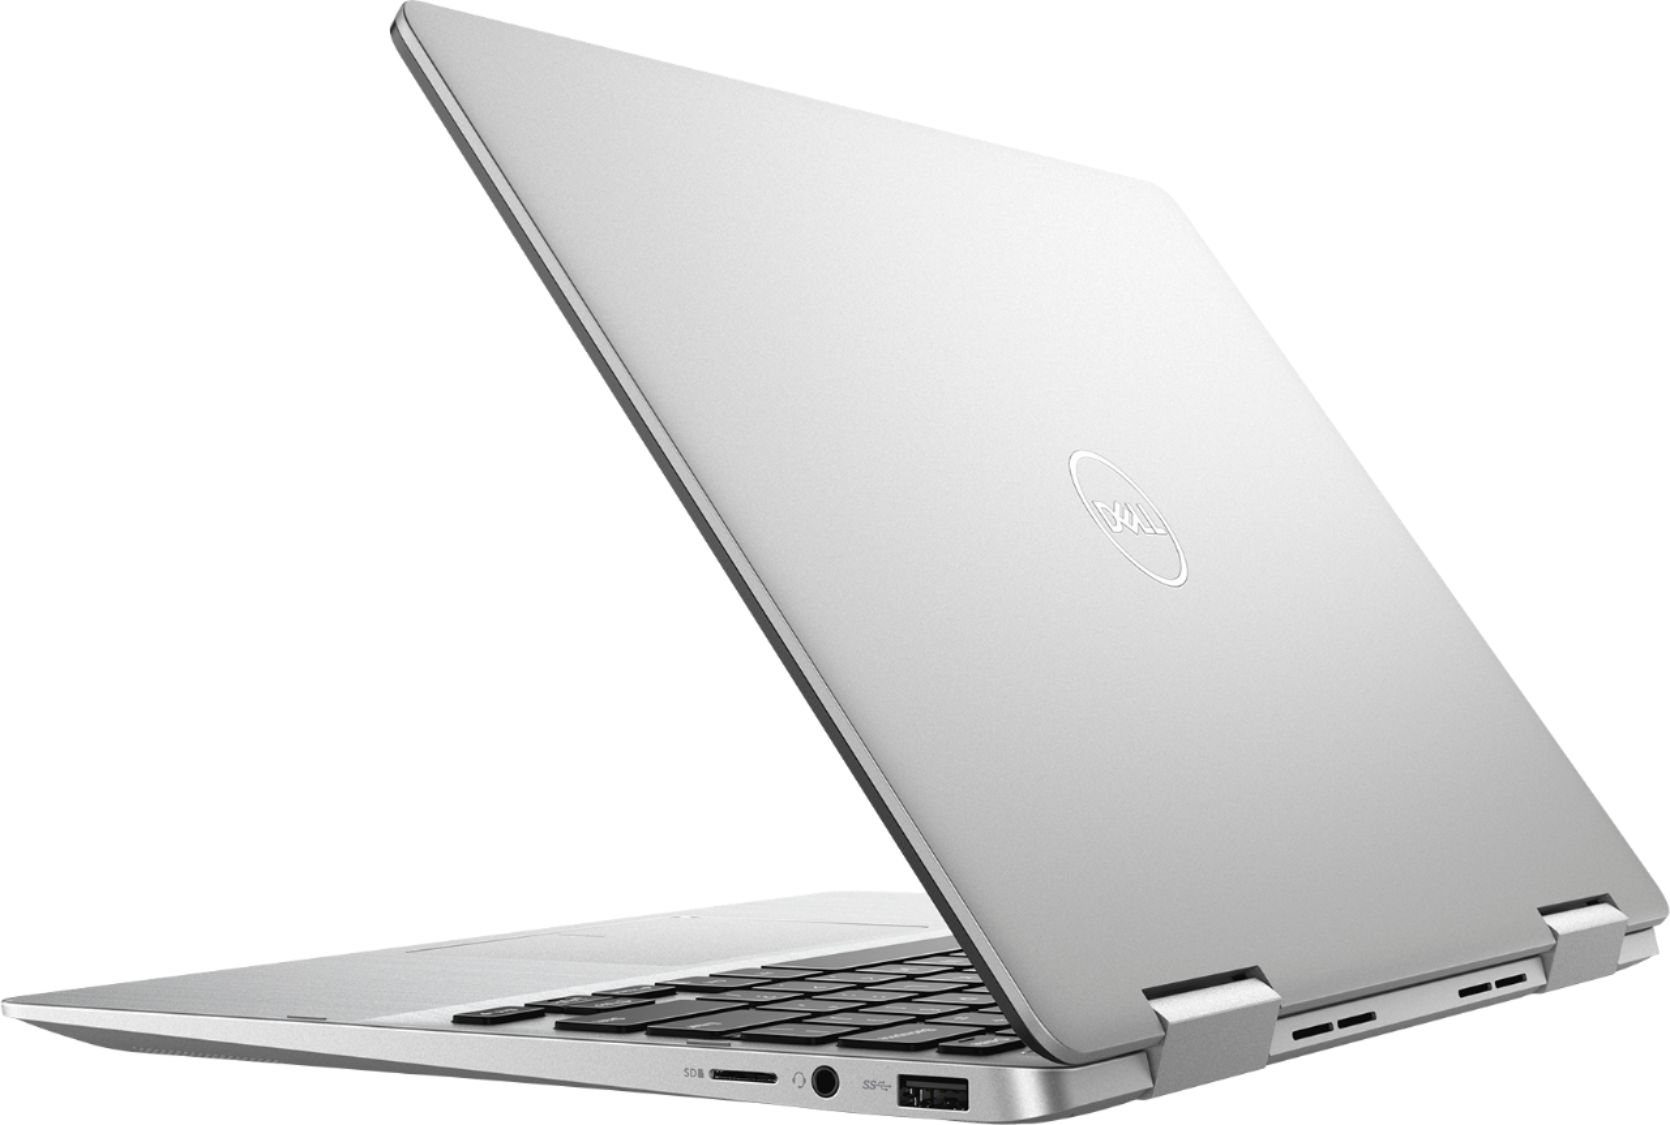 "Alt View Zoom 1. Dell - Inspiron 2-in-1 13.3"" Geek Squad Certified Refurbished Touch-Screen Laptop - Intel Core i5 - 8GB Memory - 256GB SSD - Silver."